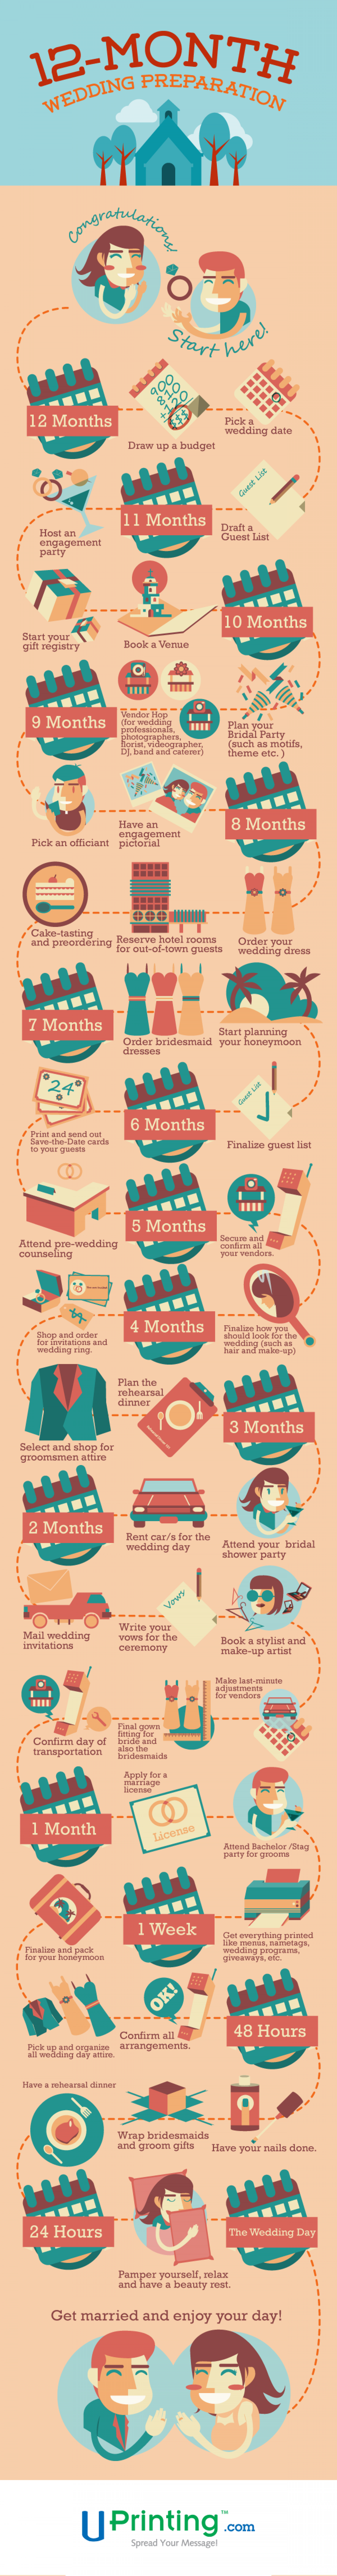 12-Month Wedding Plan Checklist Infographic